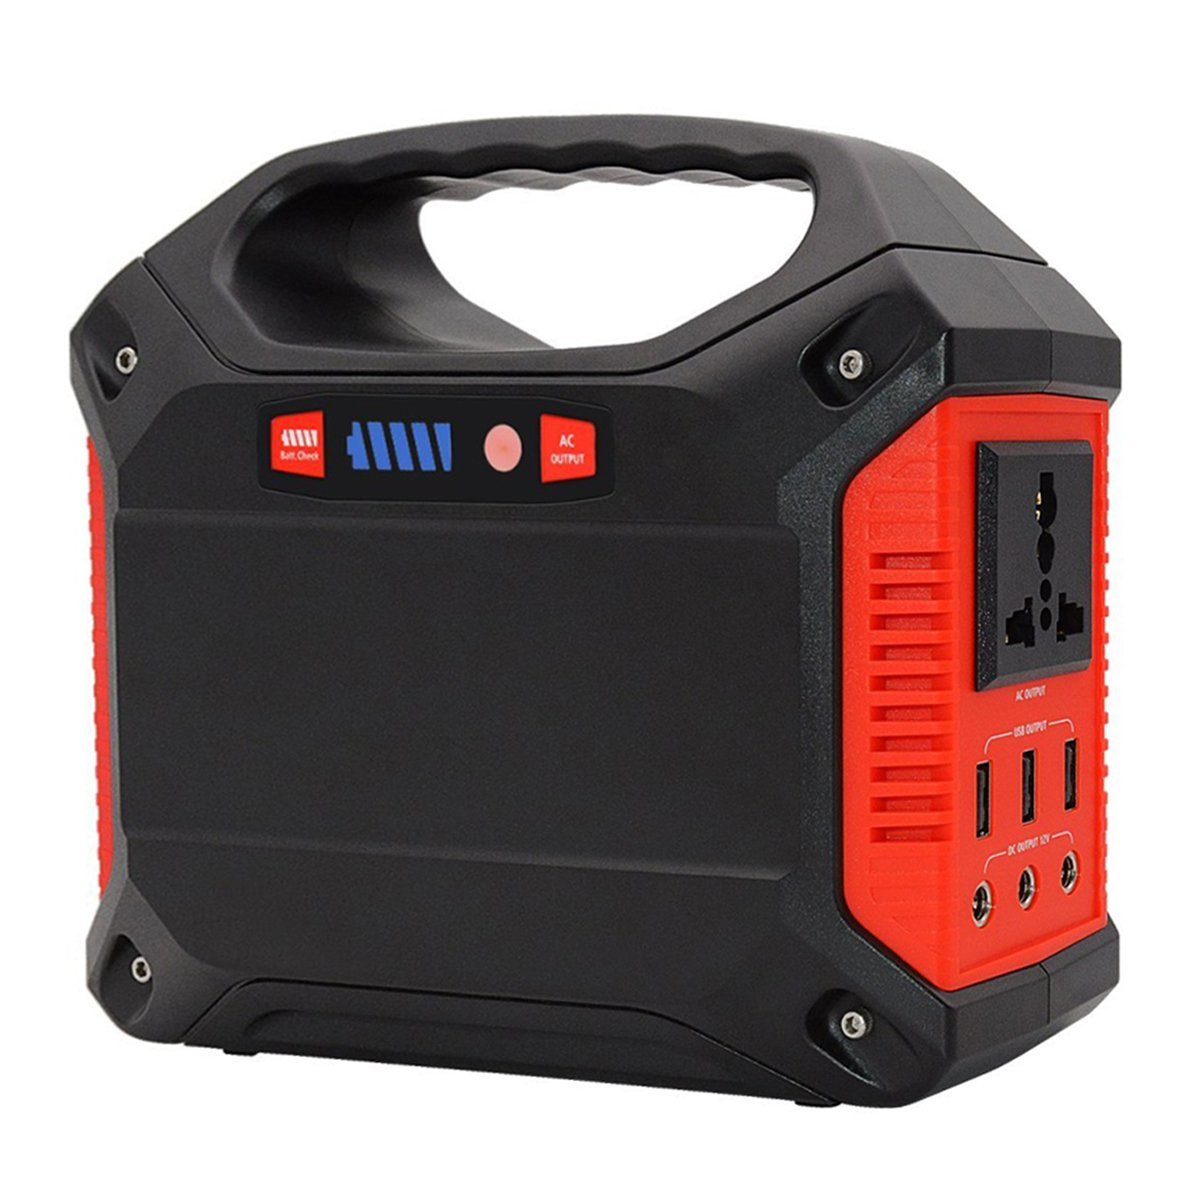 Portable Generator Power Inverter 42000mAh 155Wh Rechargeable Battery Pack Emergency Power Supply for Outdoor Camping Home Charged by Solar Panel Wall Outlet Car with 110V AC Outlet 3 DC 12V USB Port by ISUNPOW